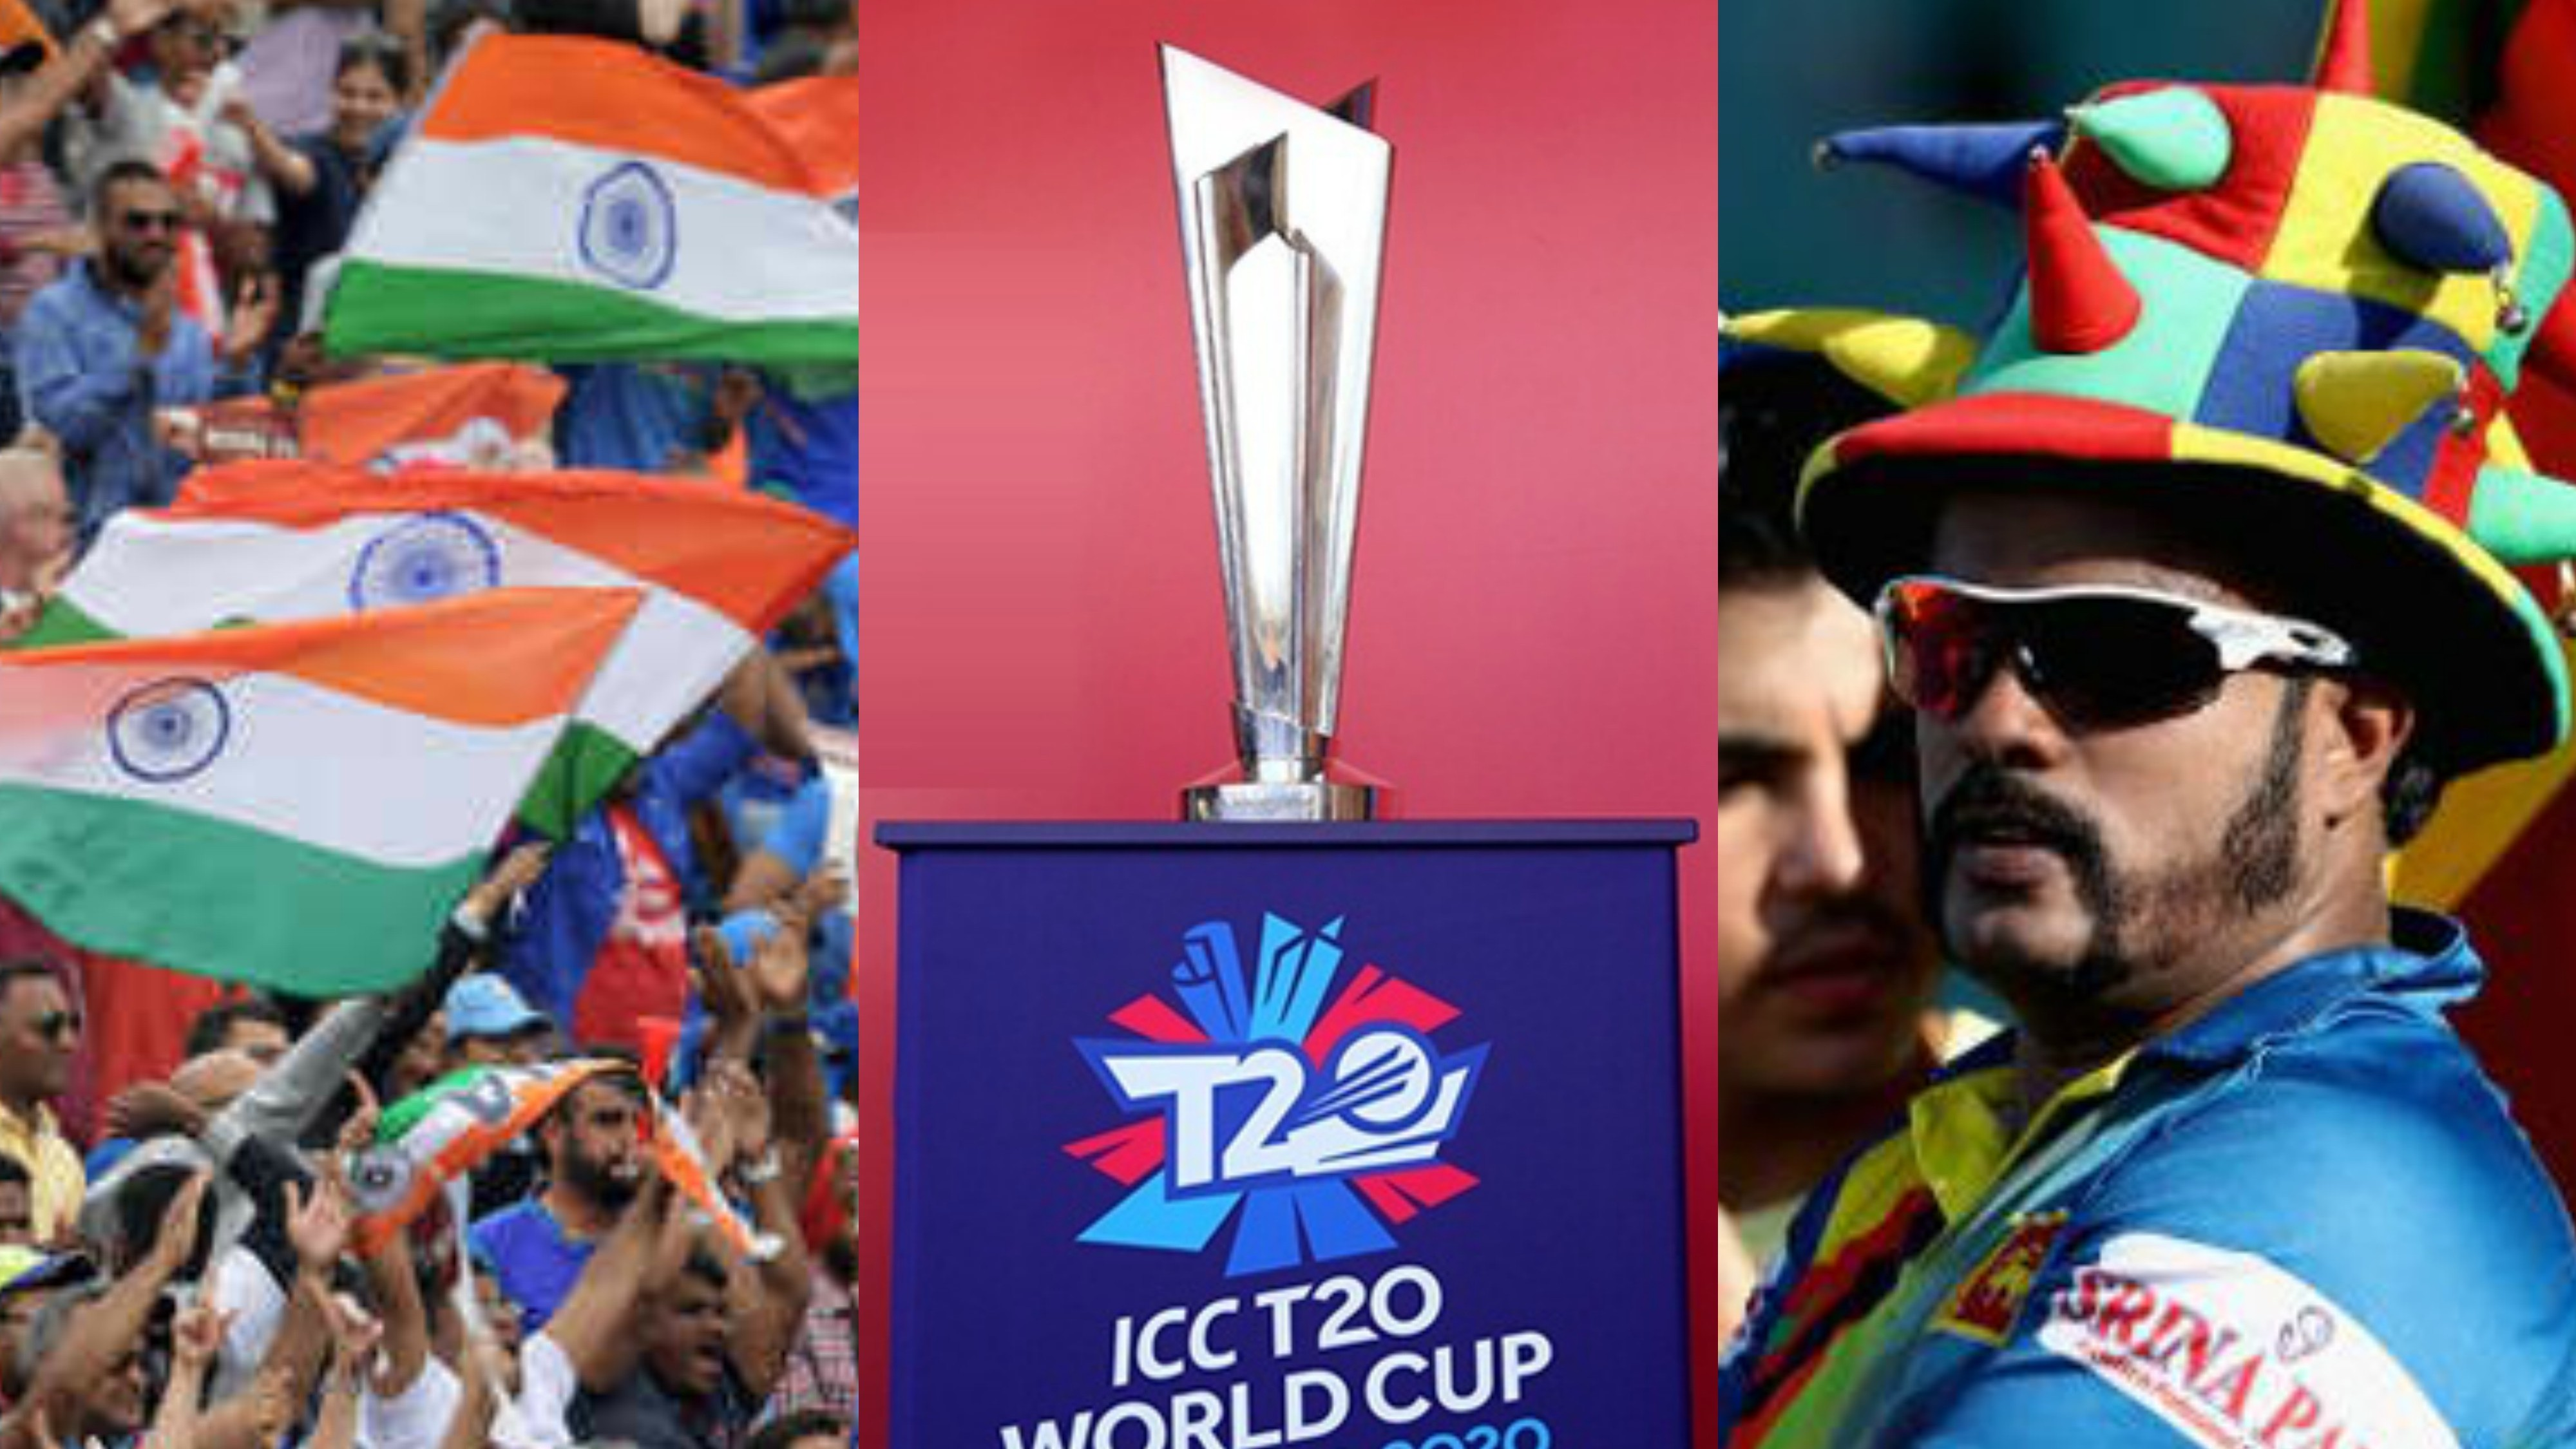 ICC clears T20 World Cup 2020 tickets dilemma after global event is postponed